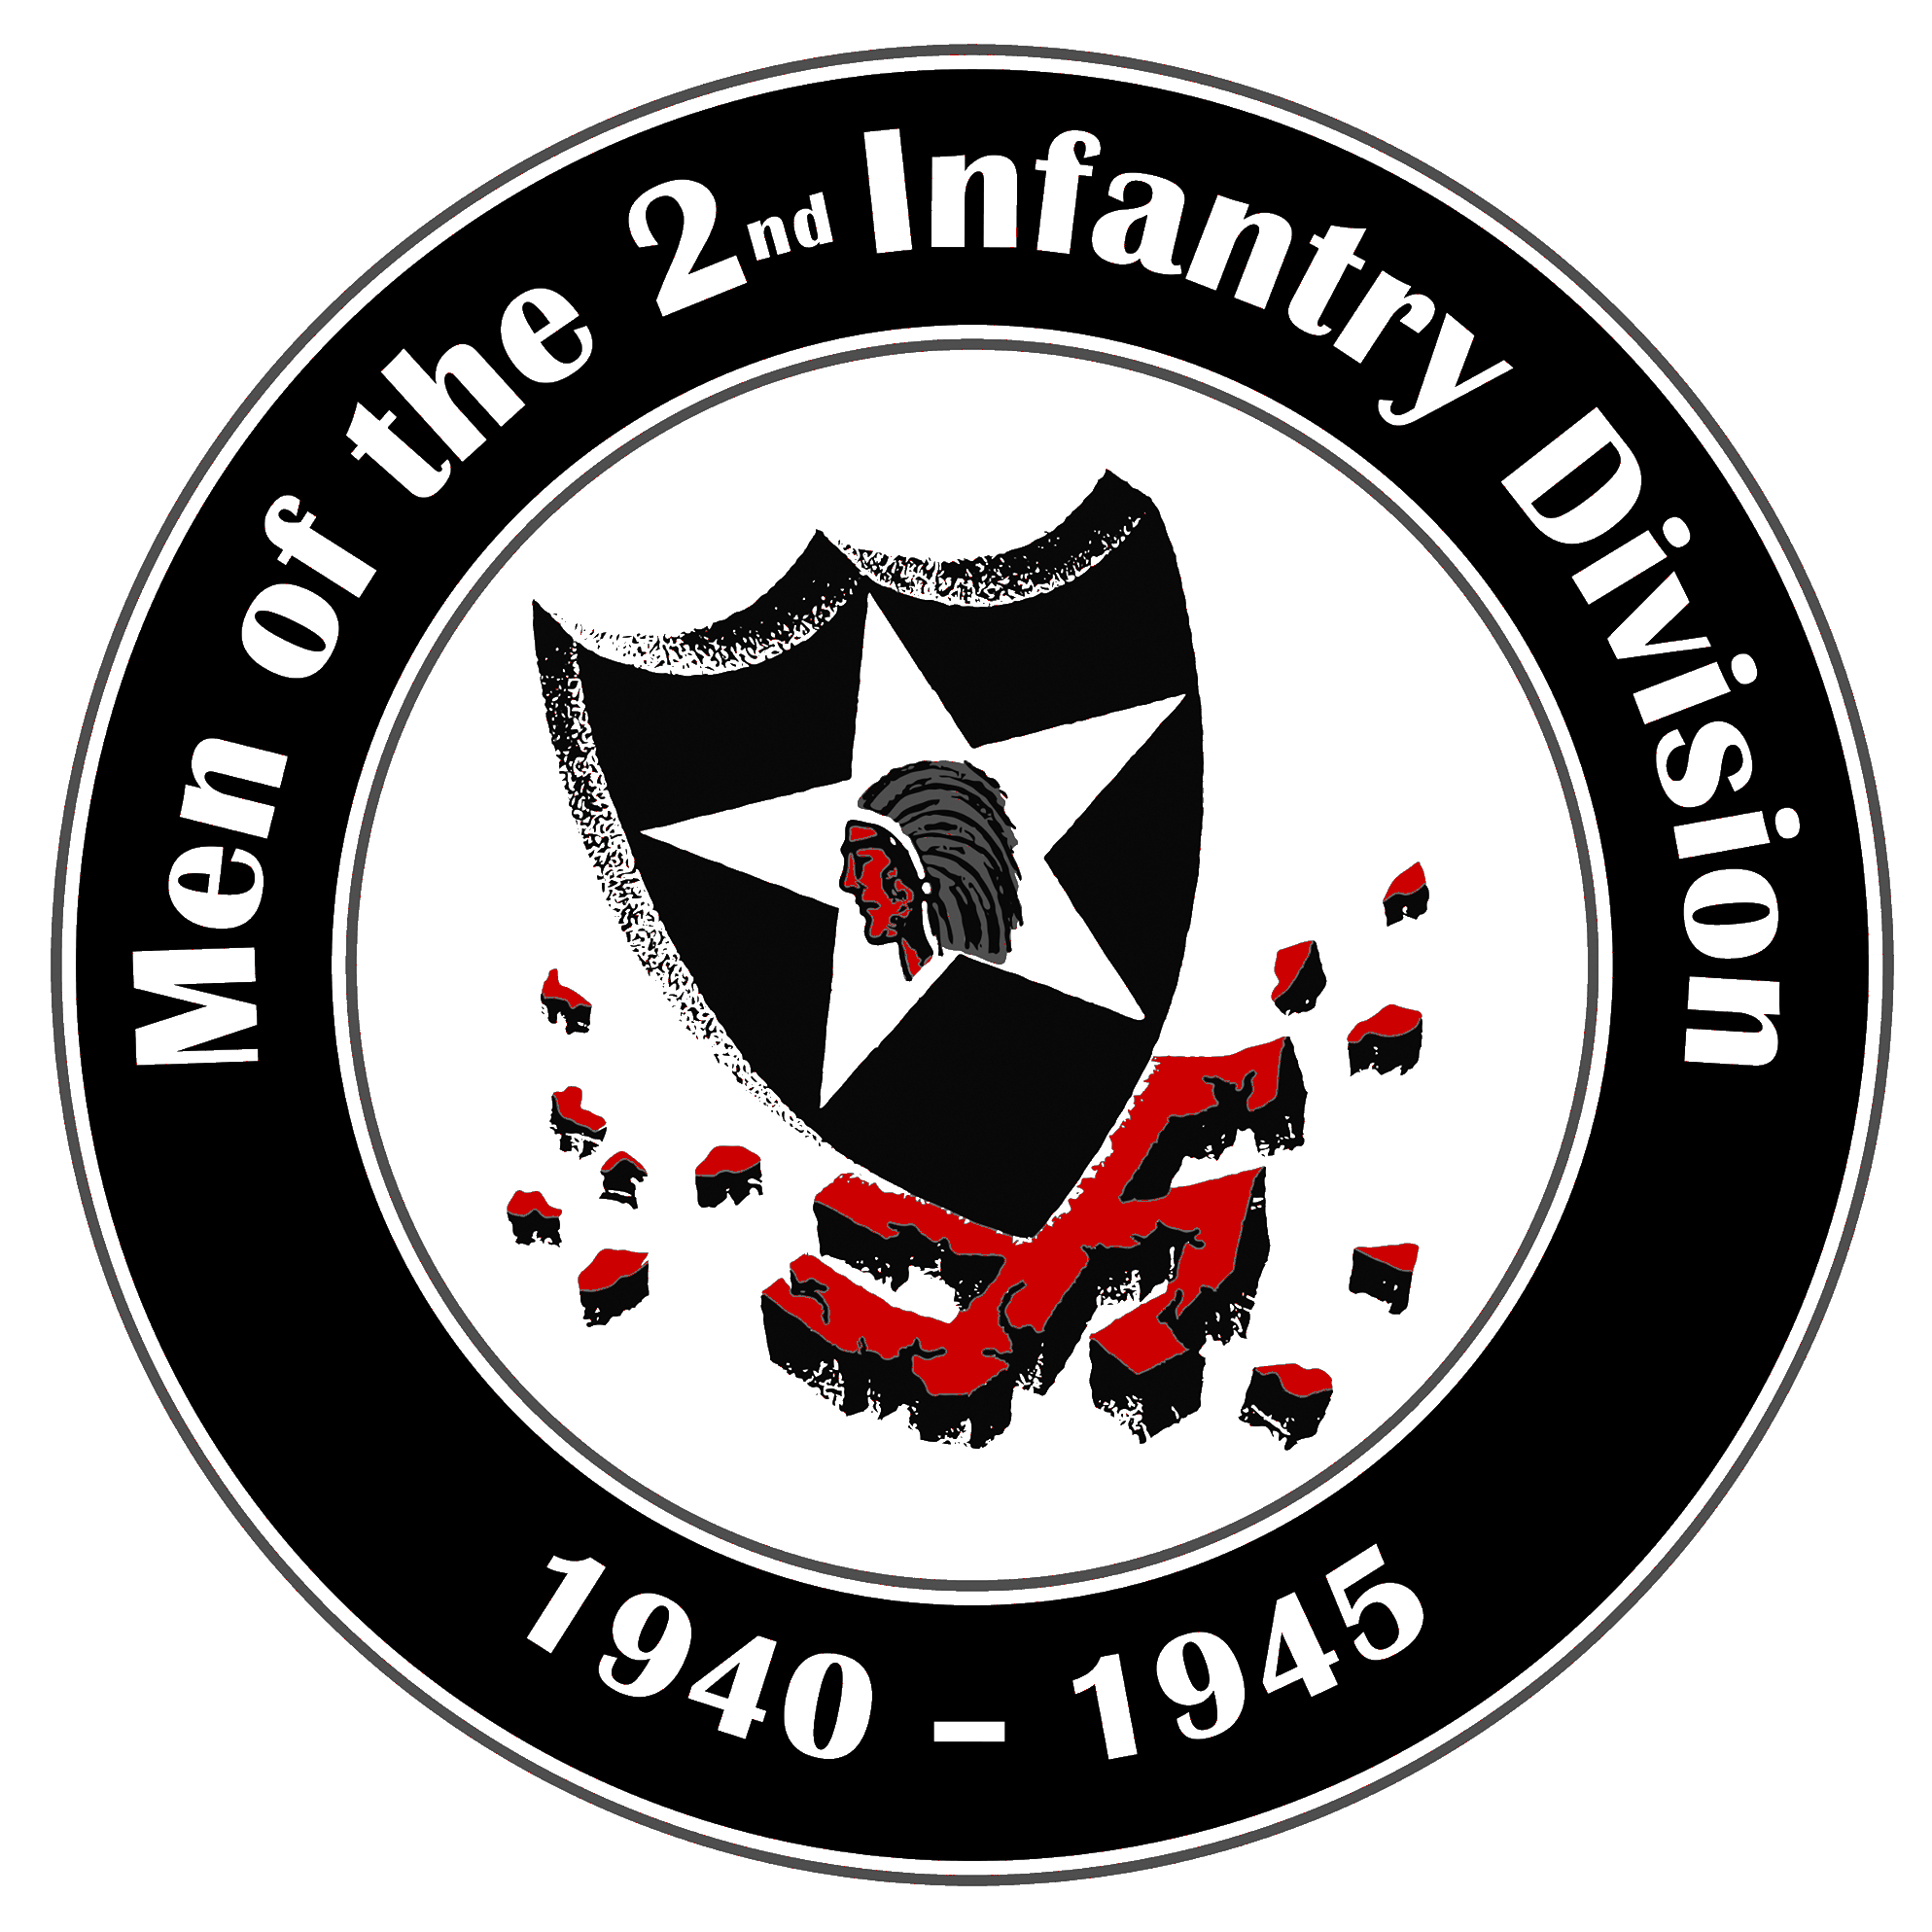 Men of the 2nd Infantry Division